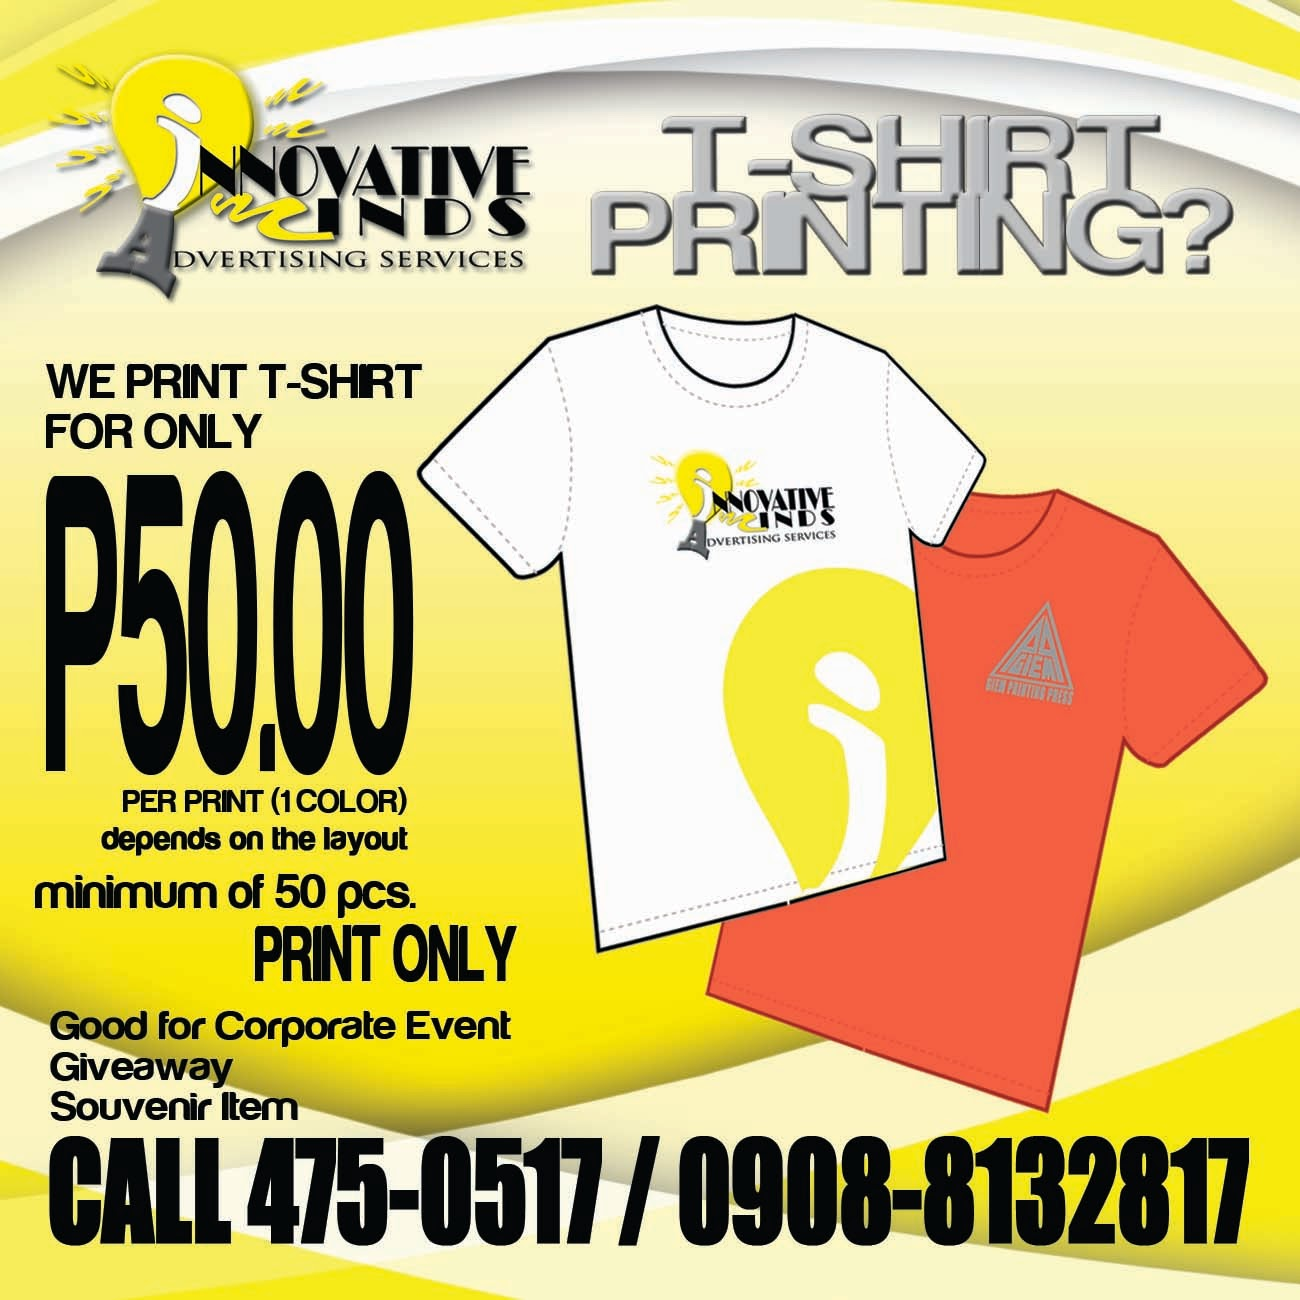 Innovative minds advertising services for T shirt advertising business